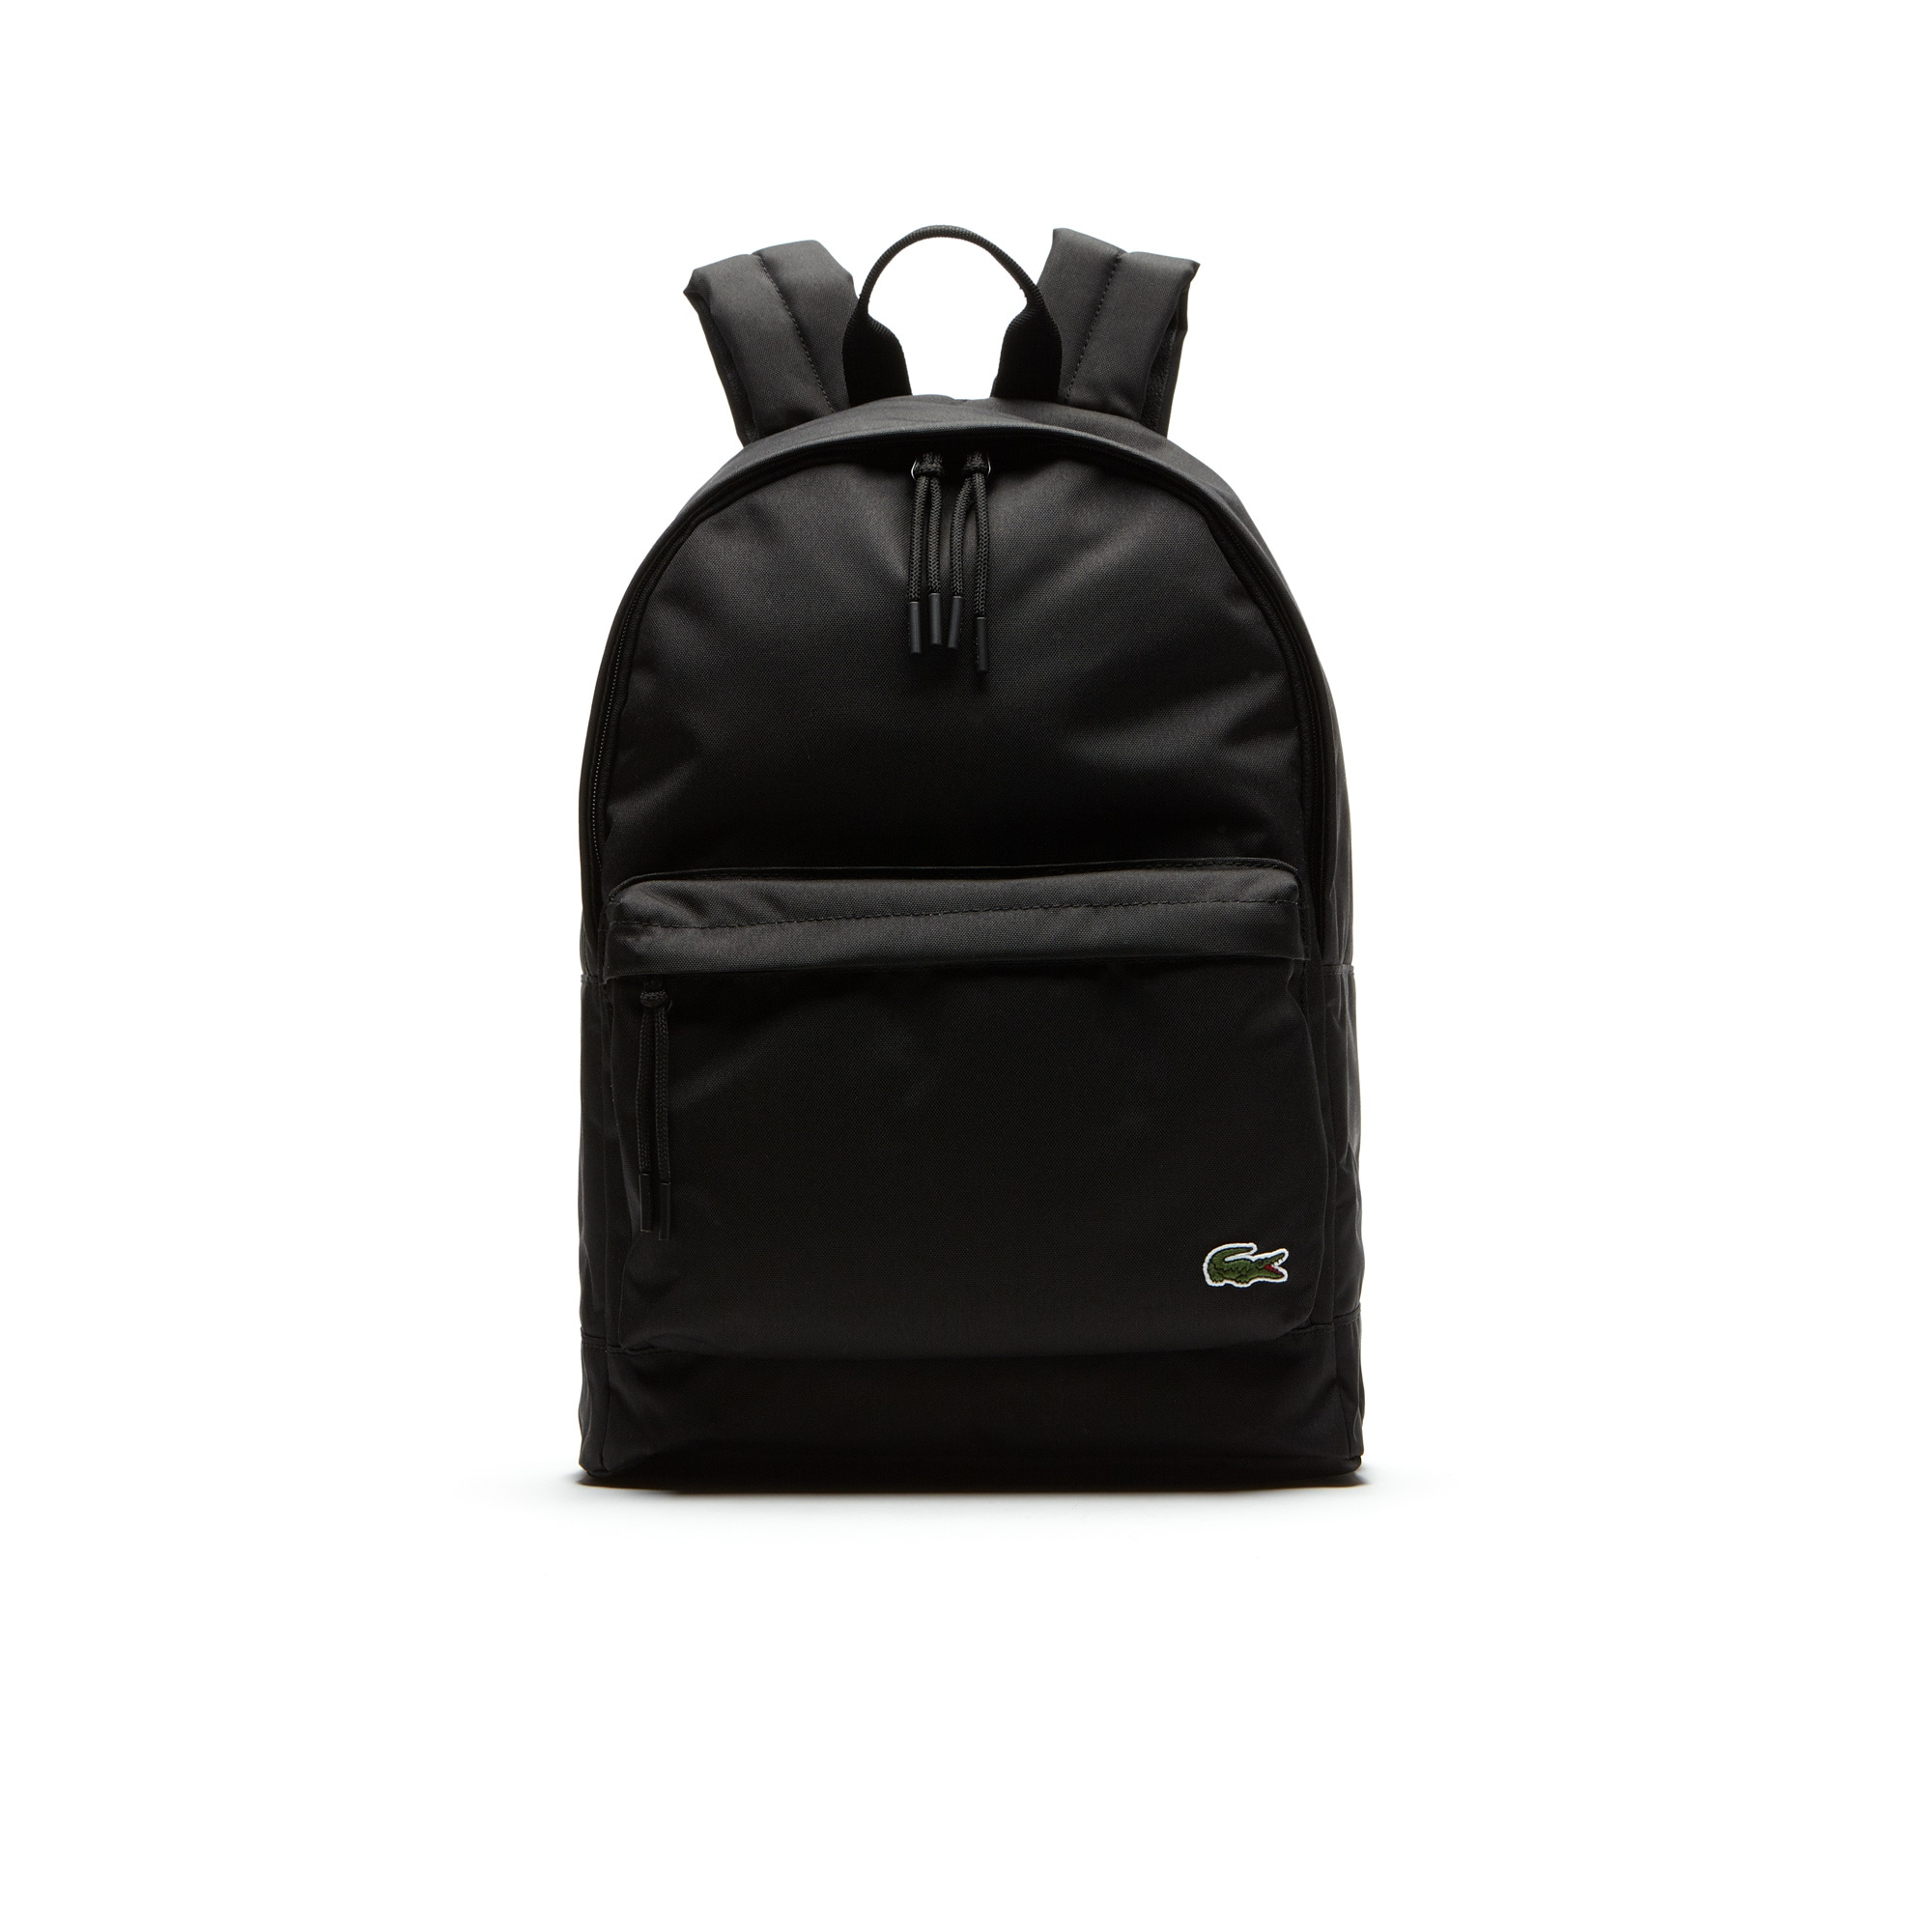 À Airbrush Dos Sac the Ebua47k Lacoste dp6g1w